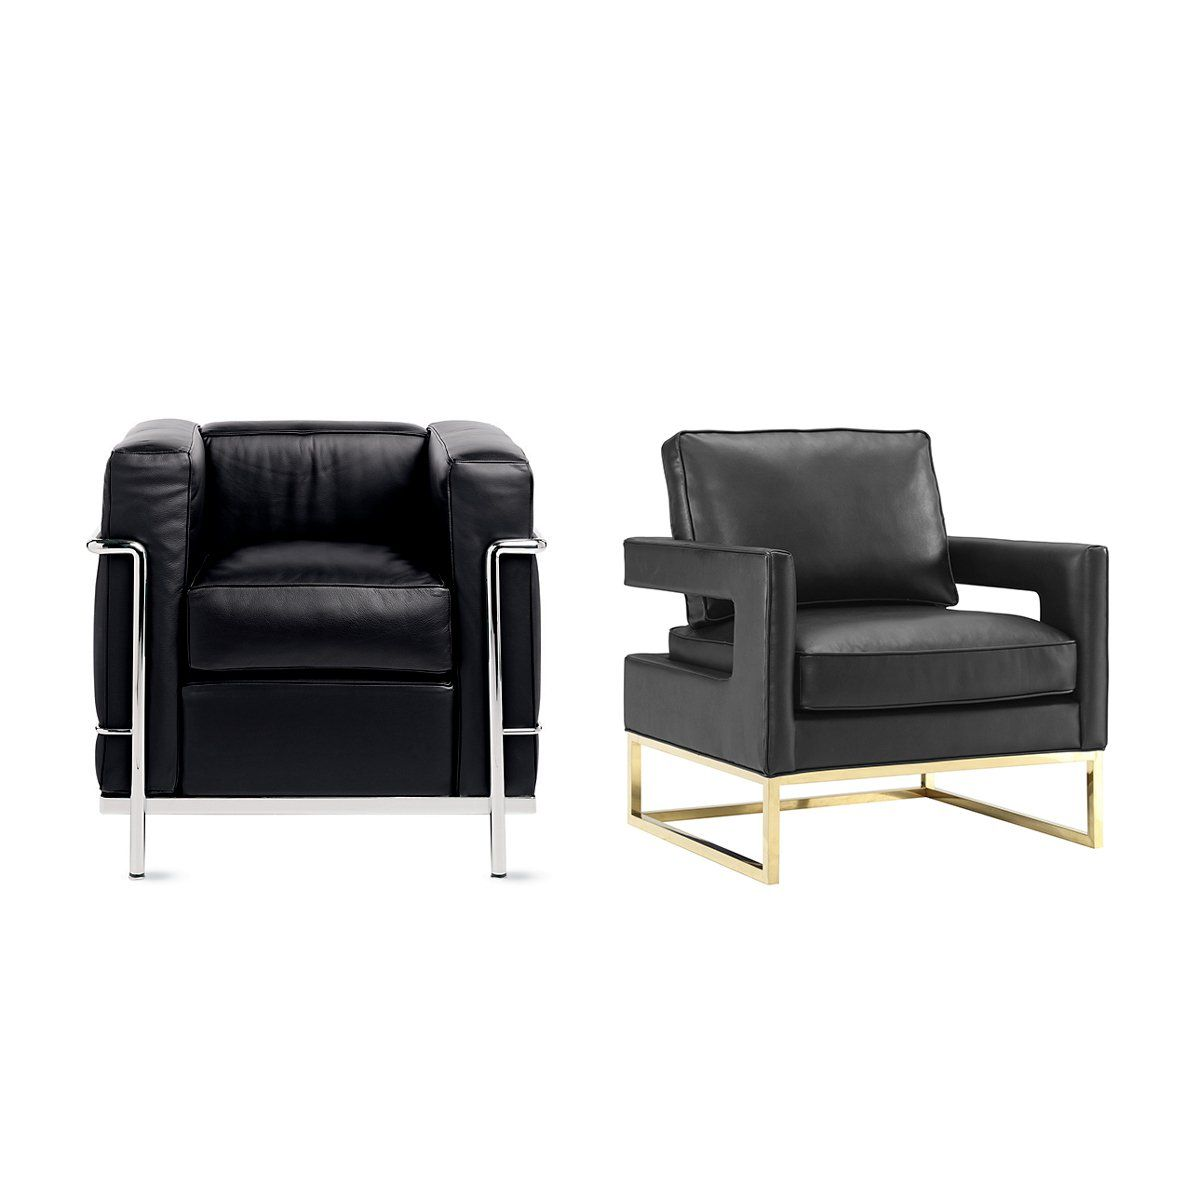 15 High End Furniture Dupes That Will Save You Tons Of Money Buy